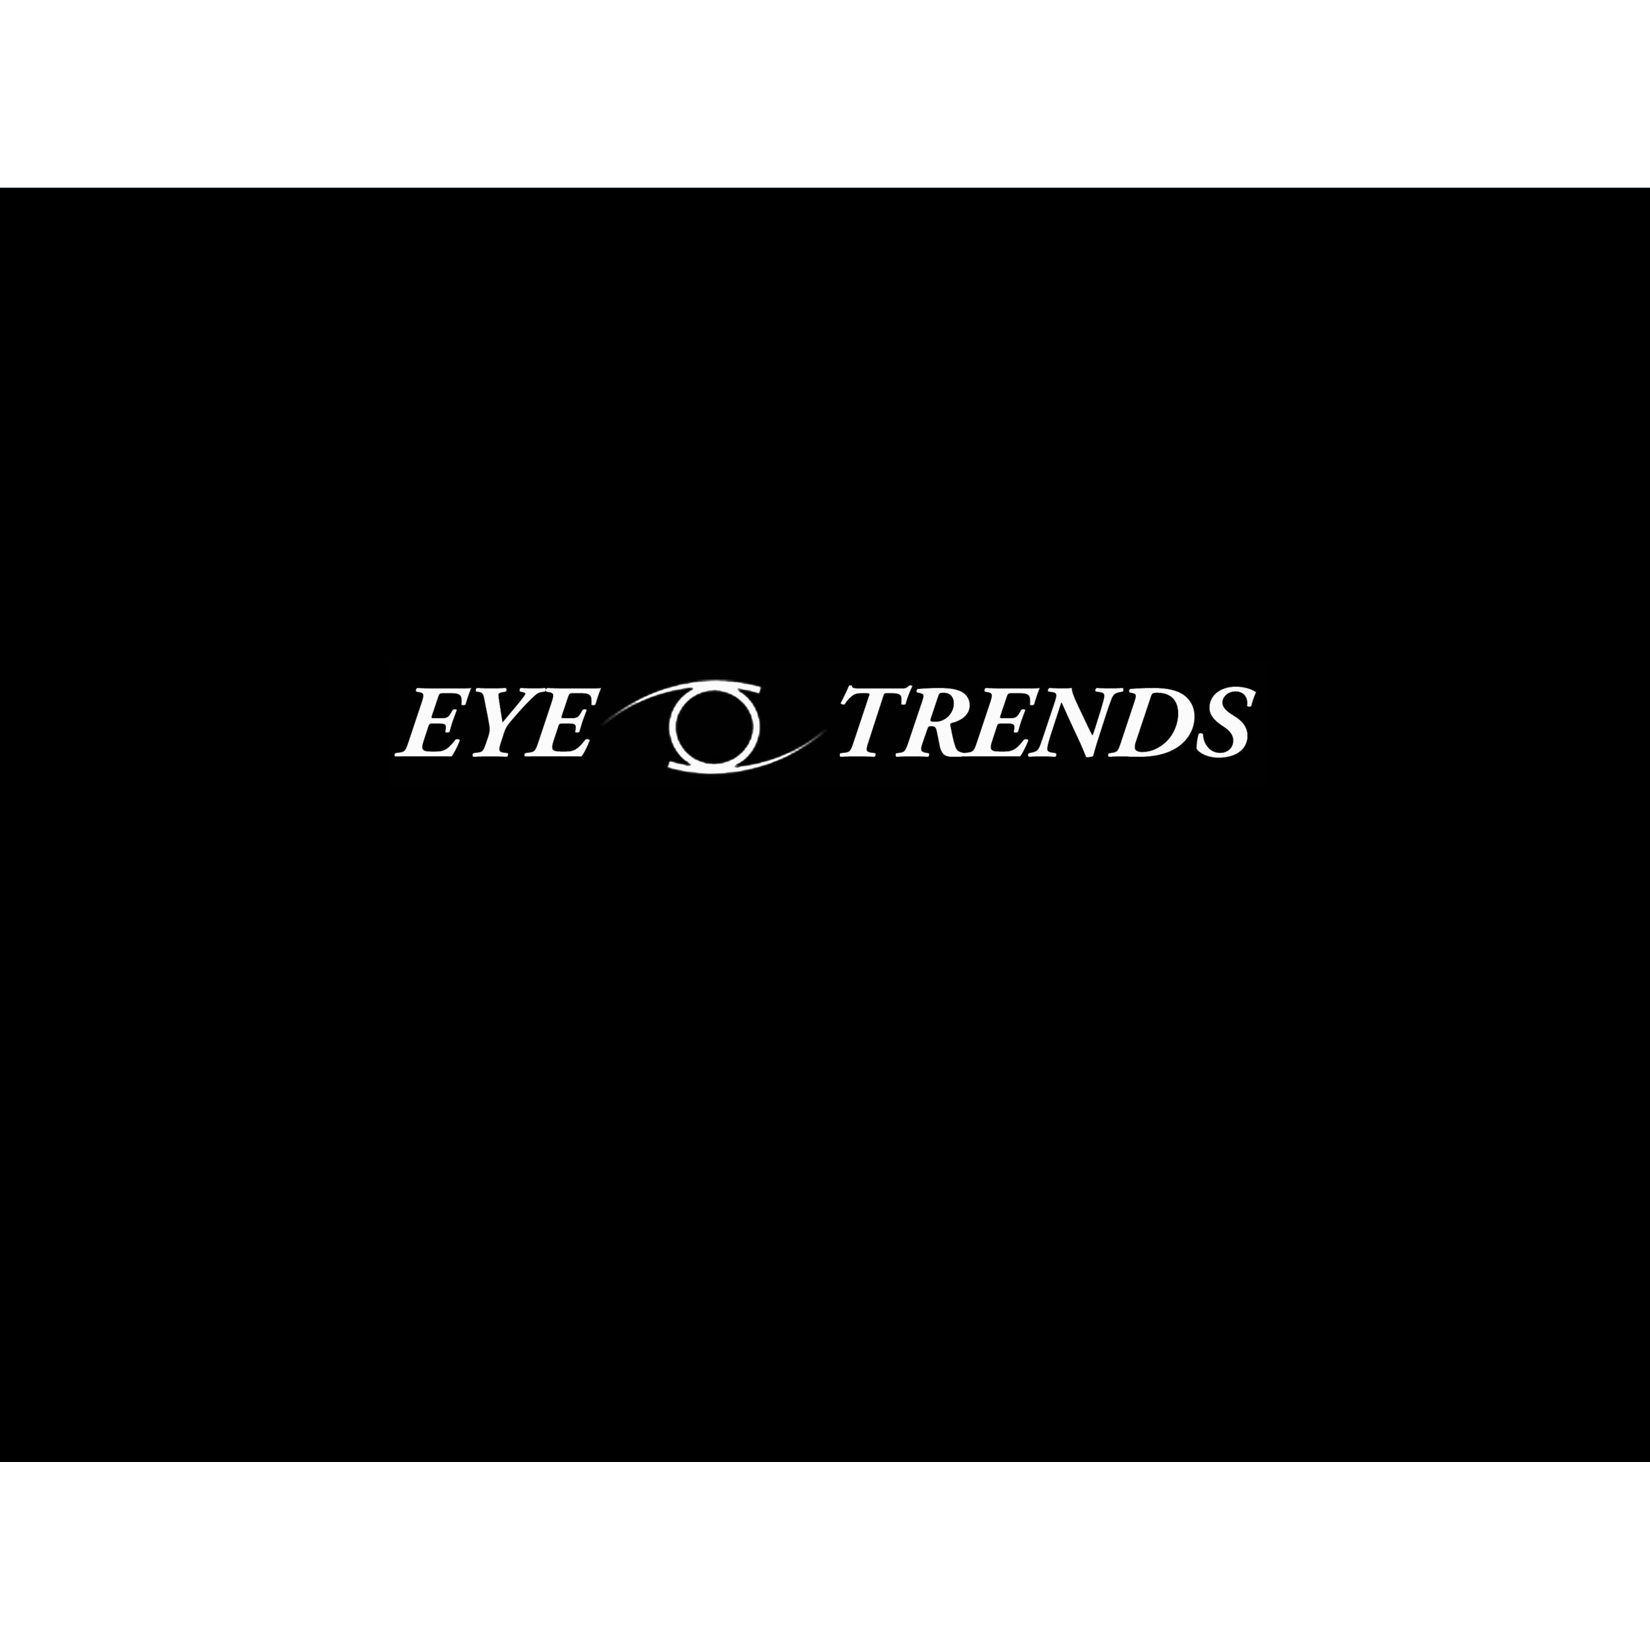 Dr. Zaibaq And Associates - Eye Trends